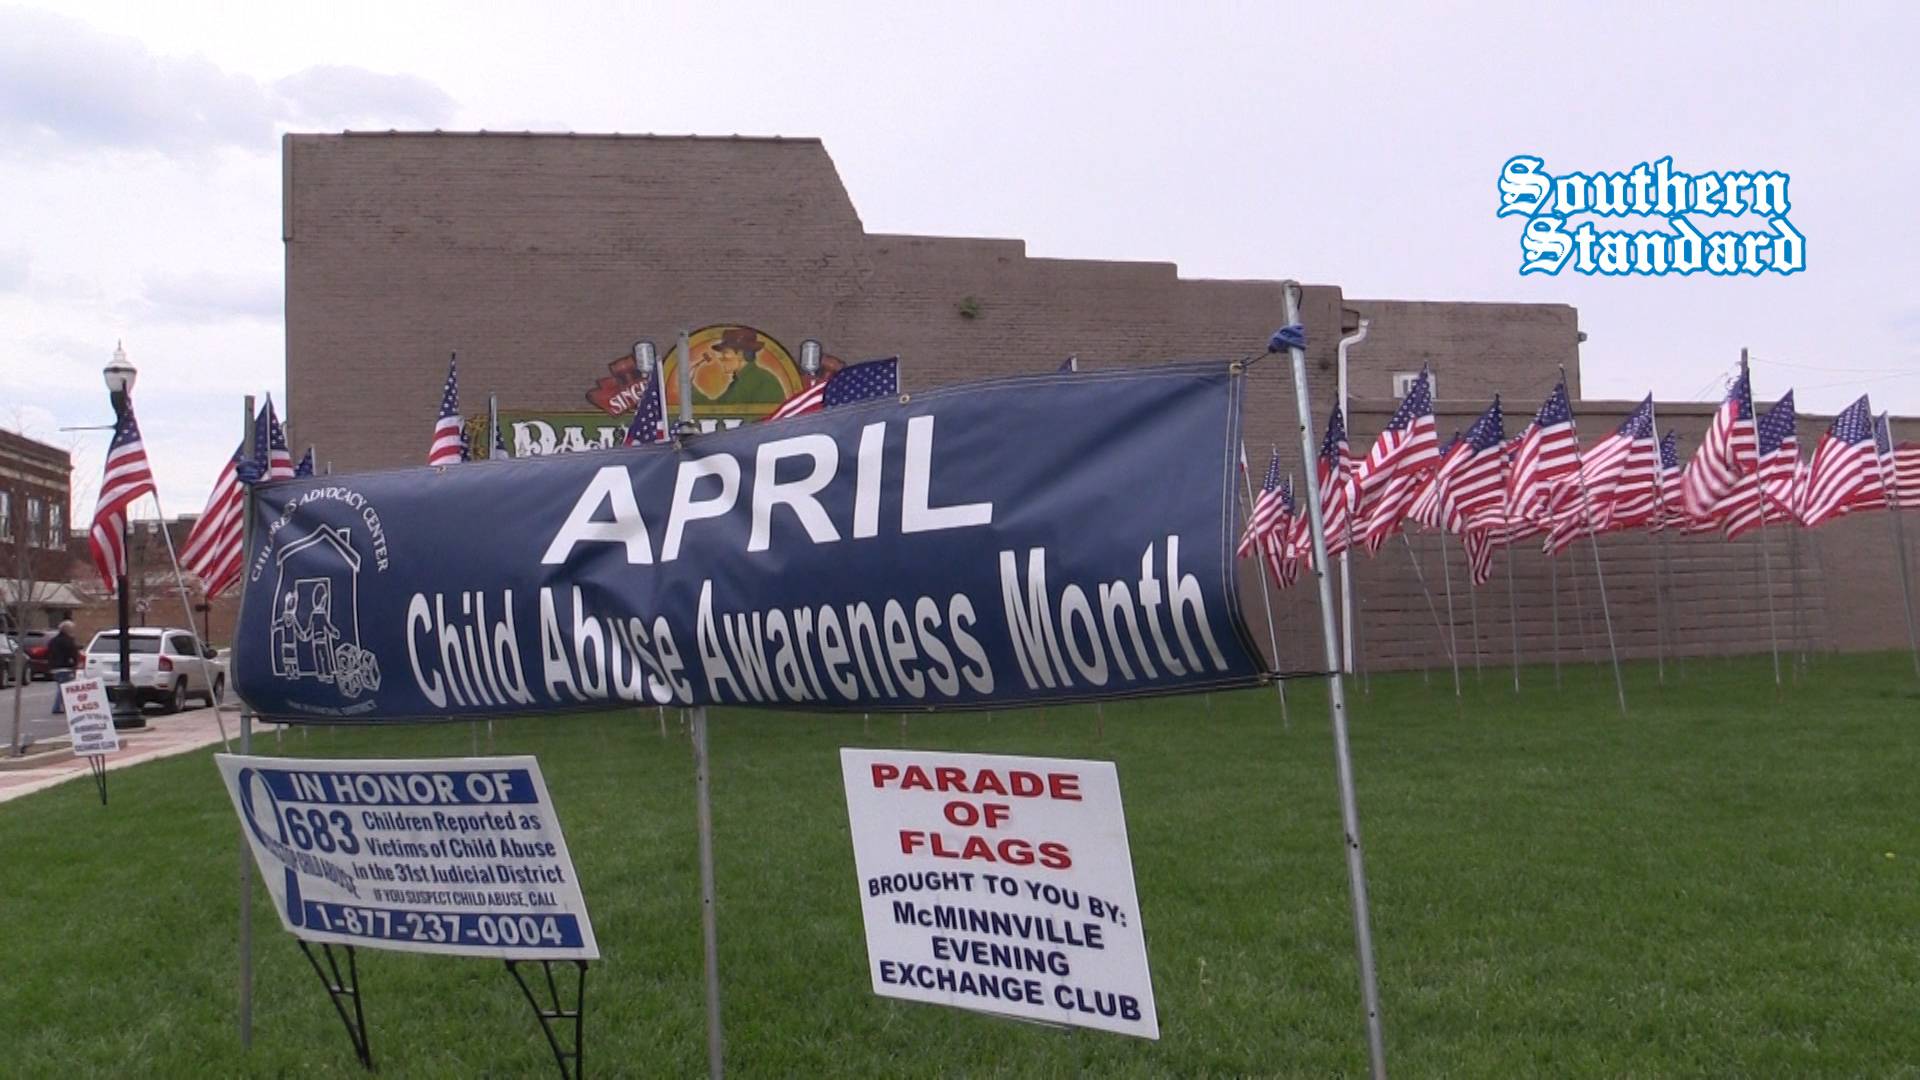 VIDEO: Child Abuse Prevention Month Program